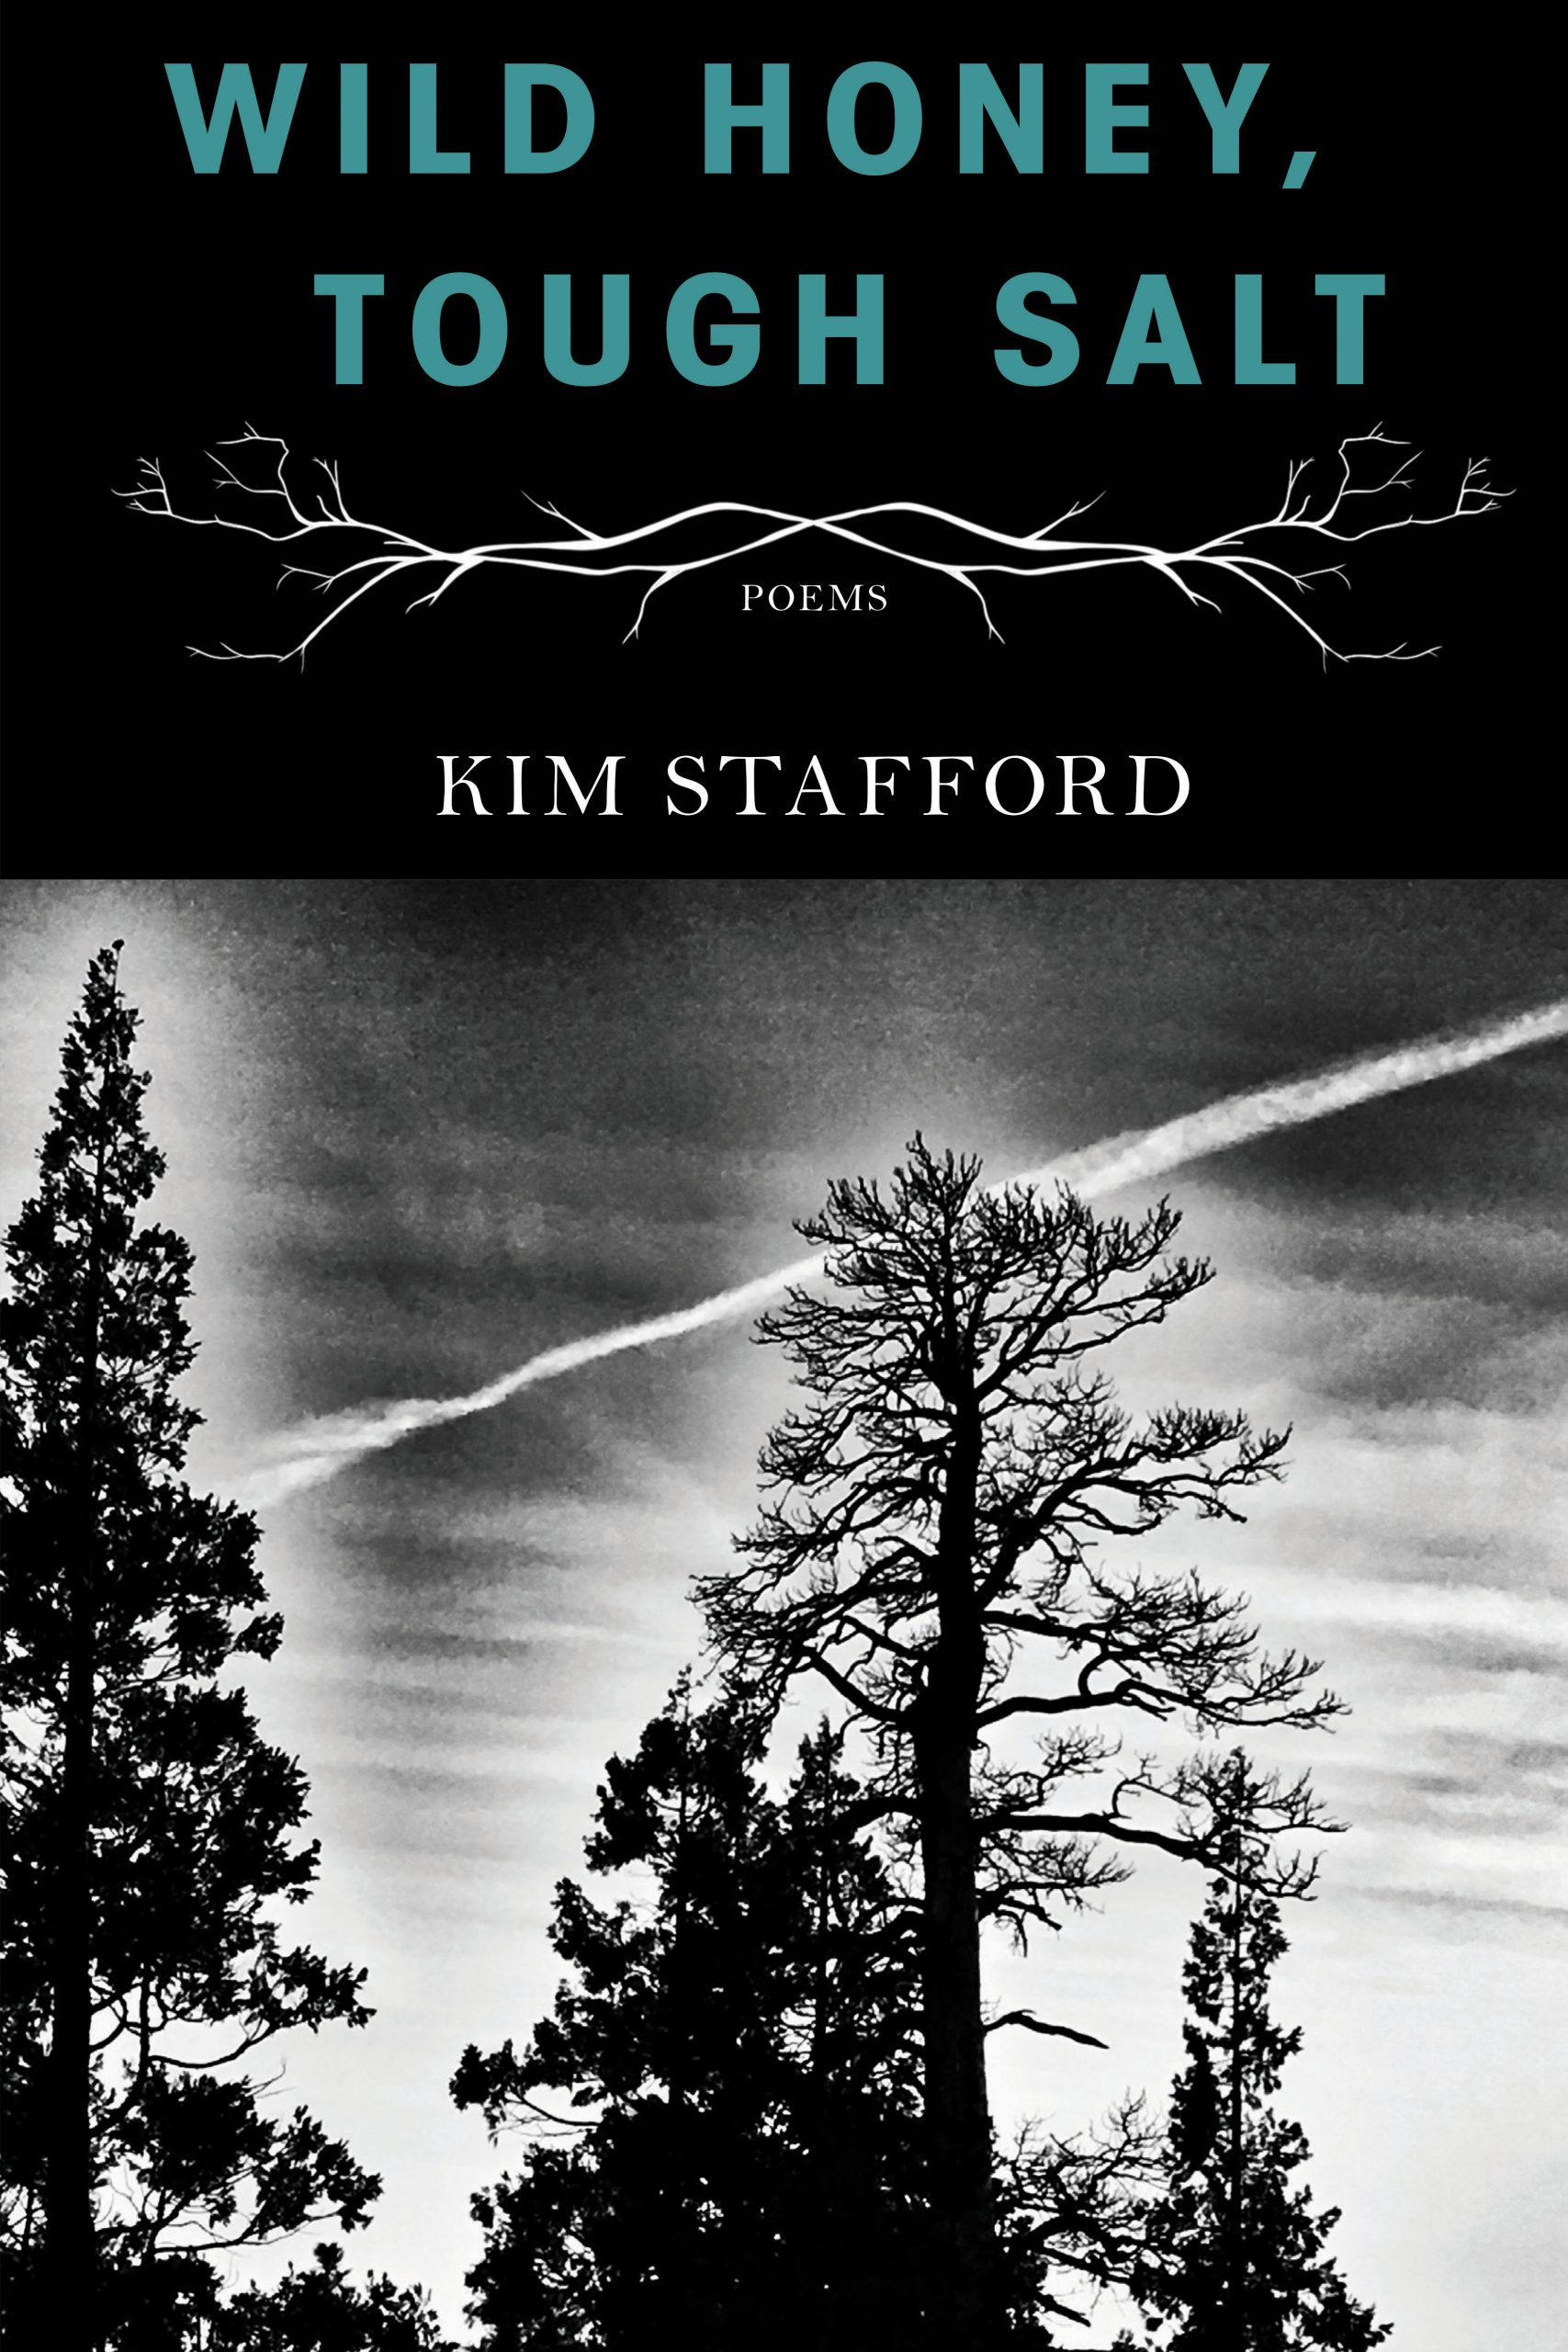 A black and white photograph of a forest and blue script towards the top that reads Wild Honey, Tough Salt poems by Kim Stafford.